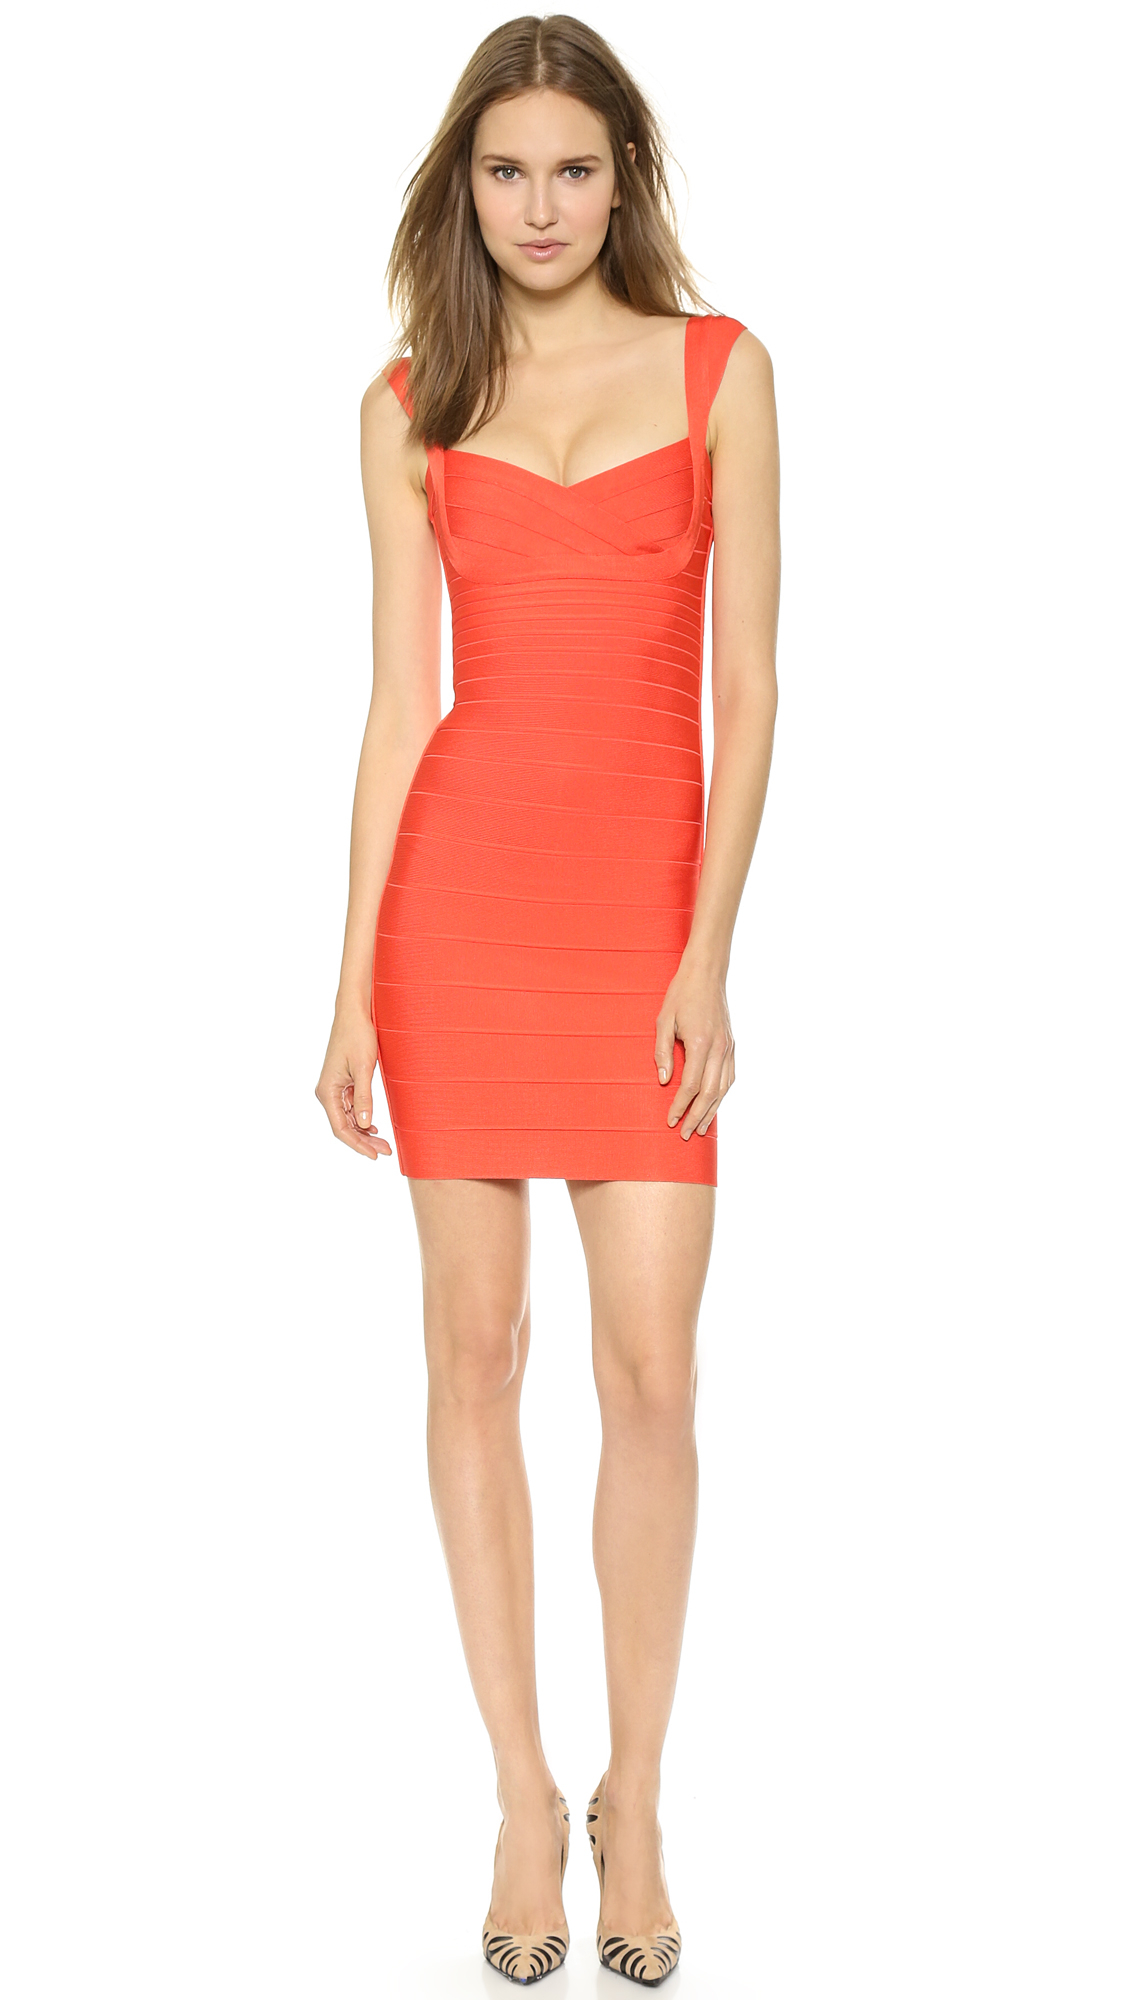 Hervé léger Abrielle Cocktail Dress Coral Red in Red | Lyst